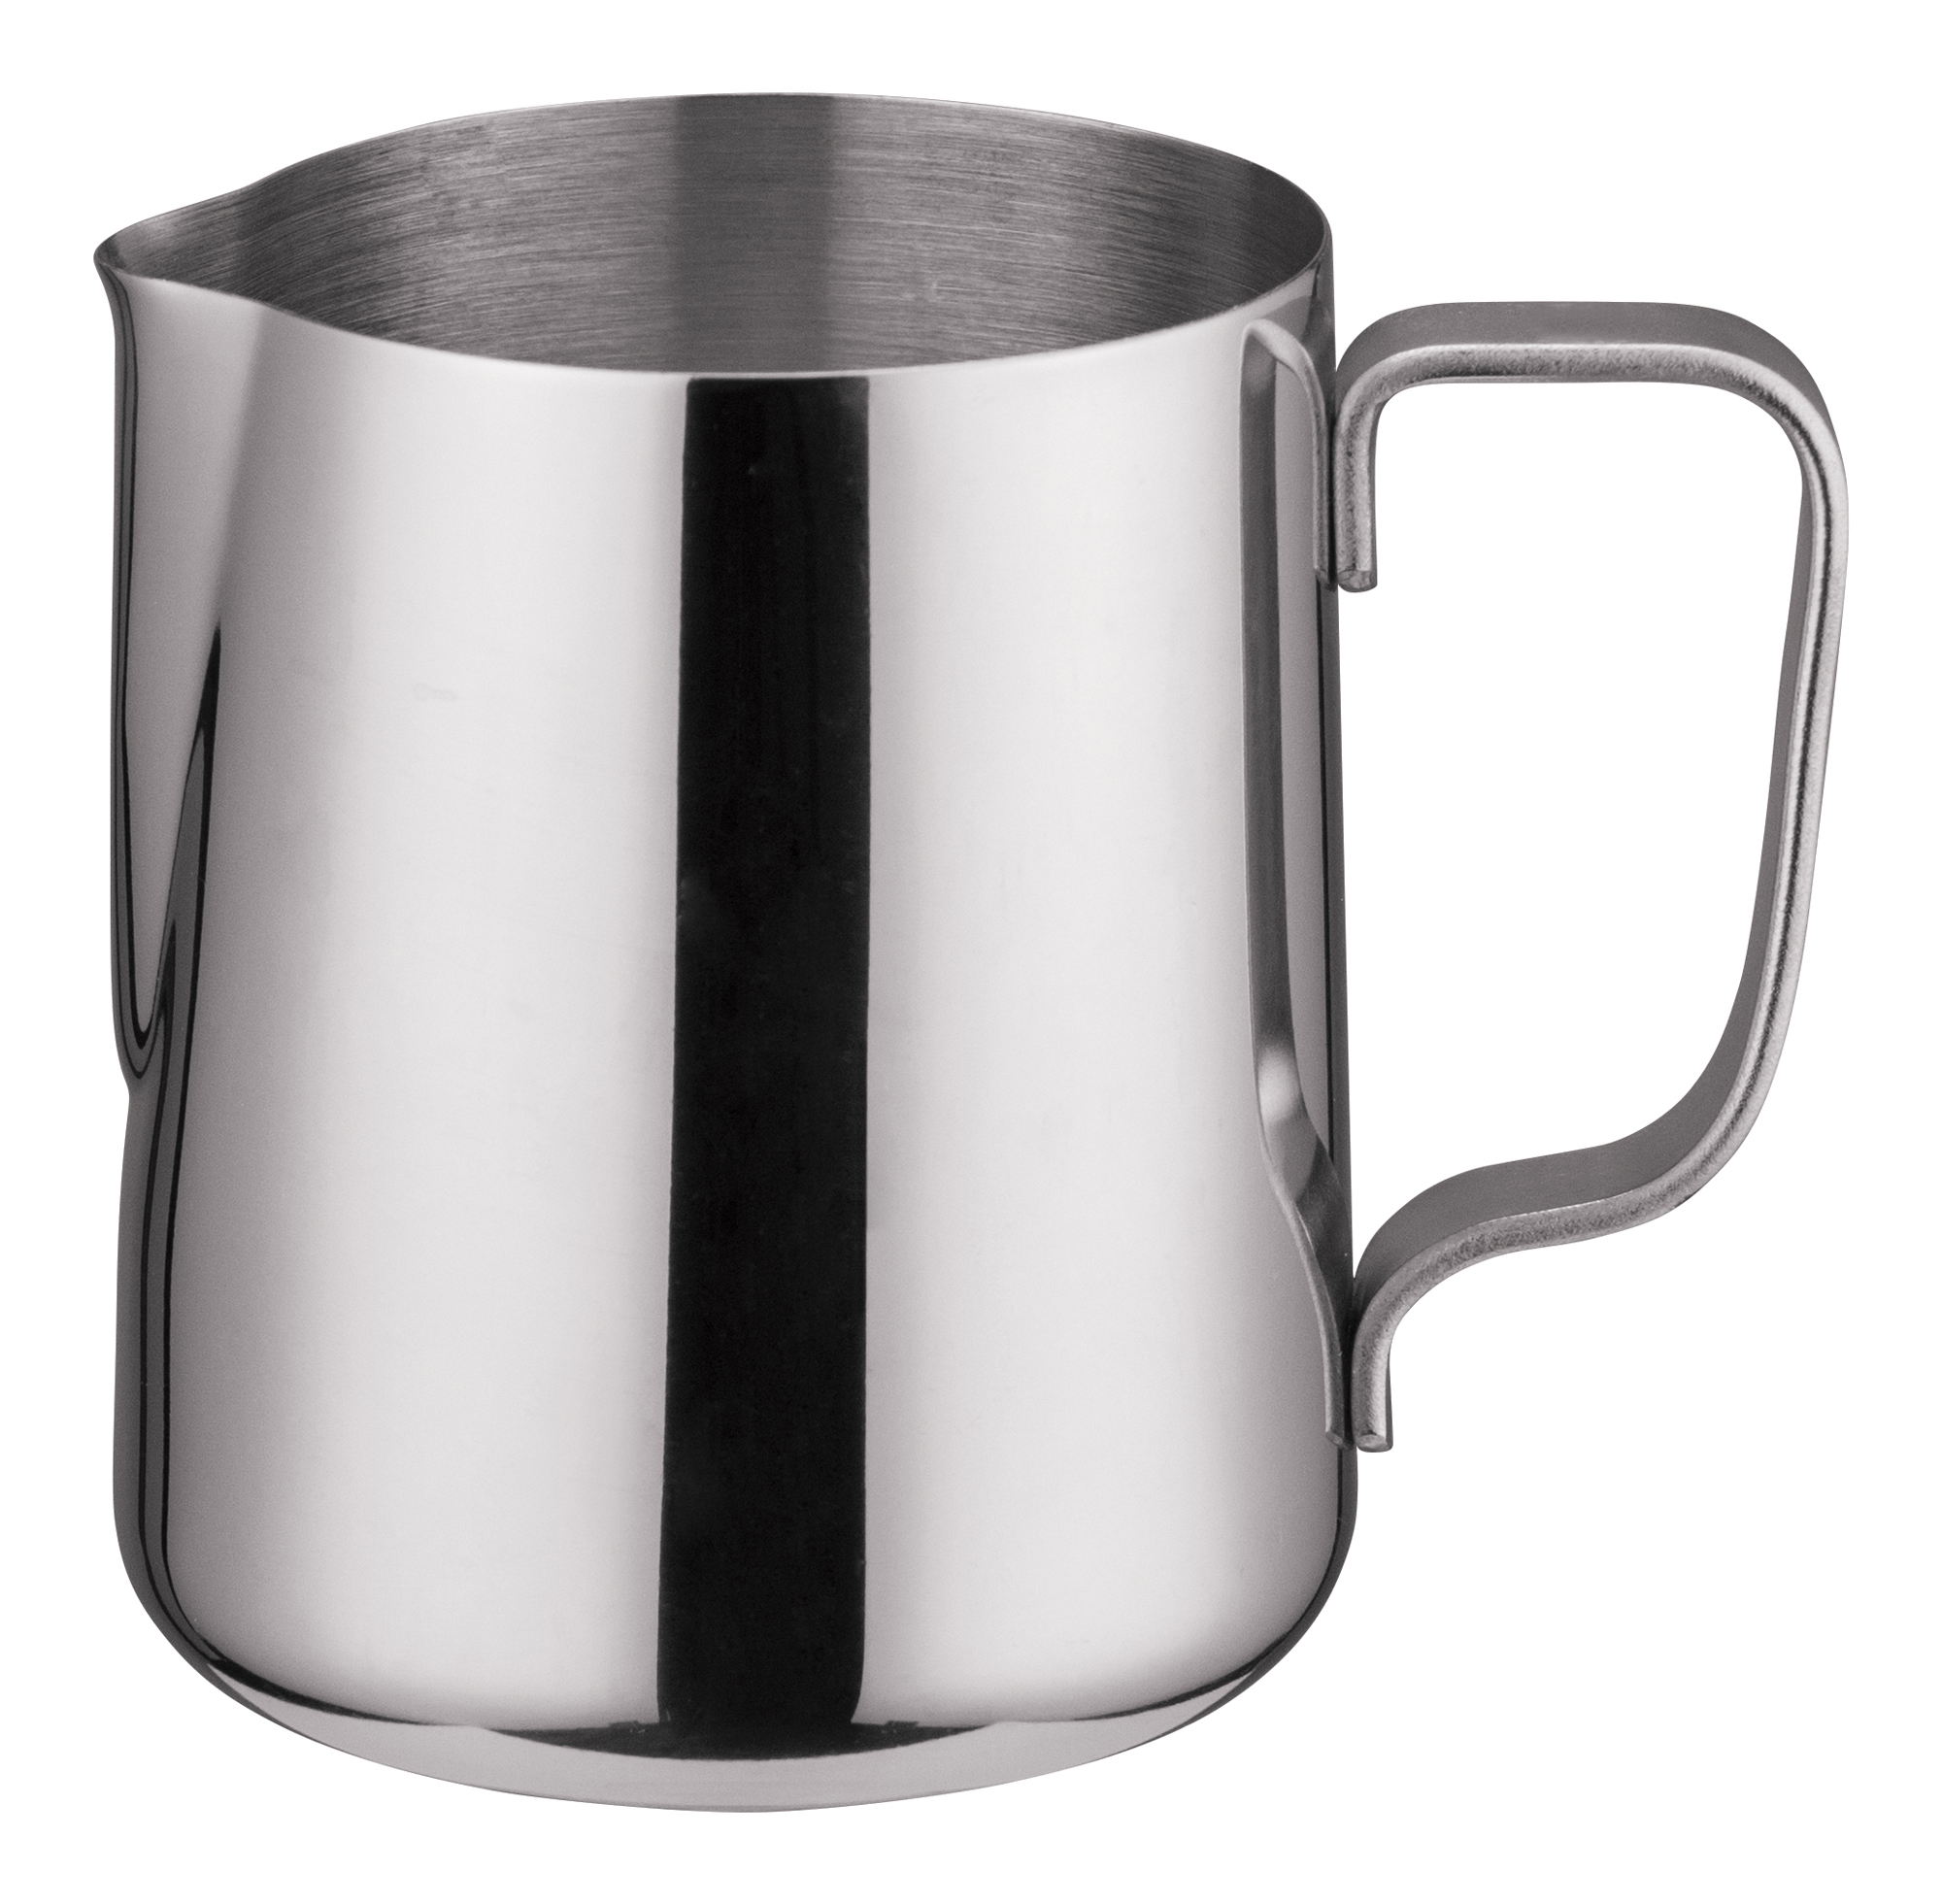 Winco WP-20 pitchers-stainless steel